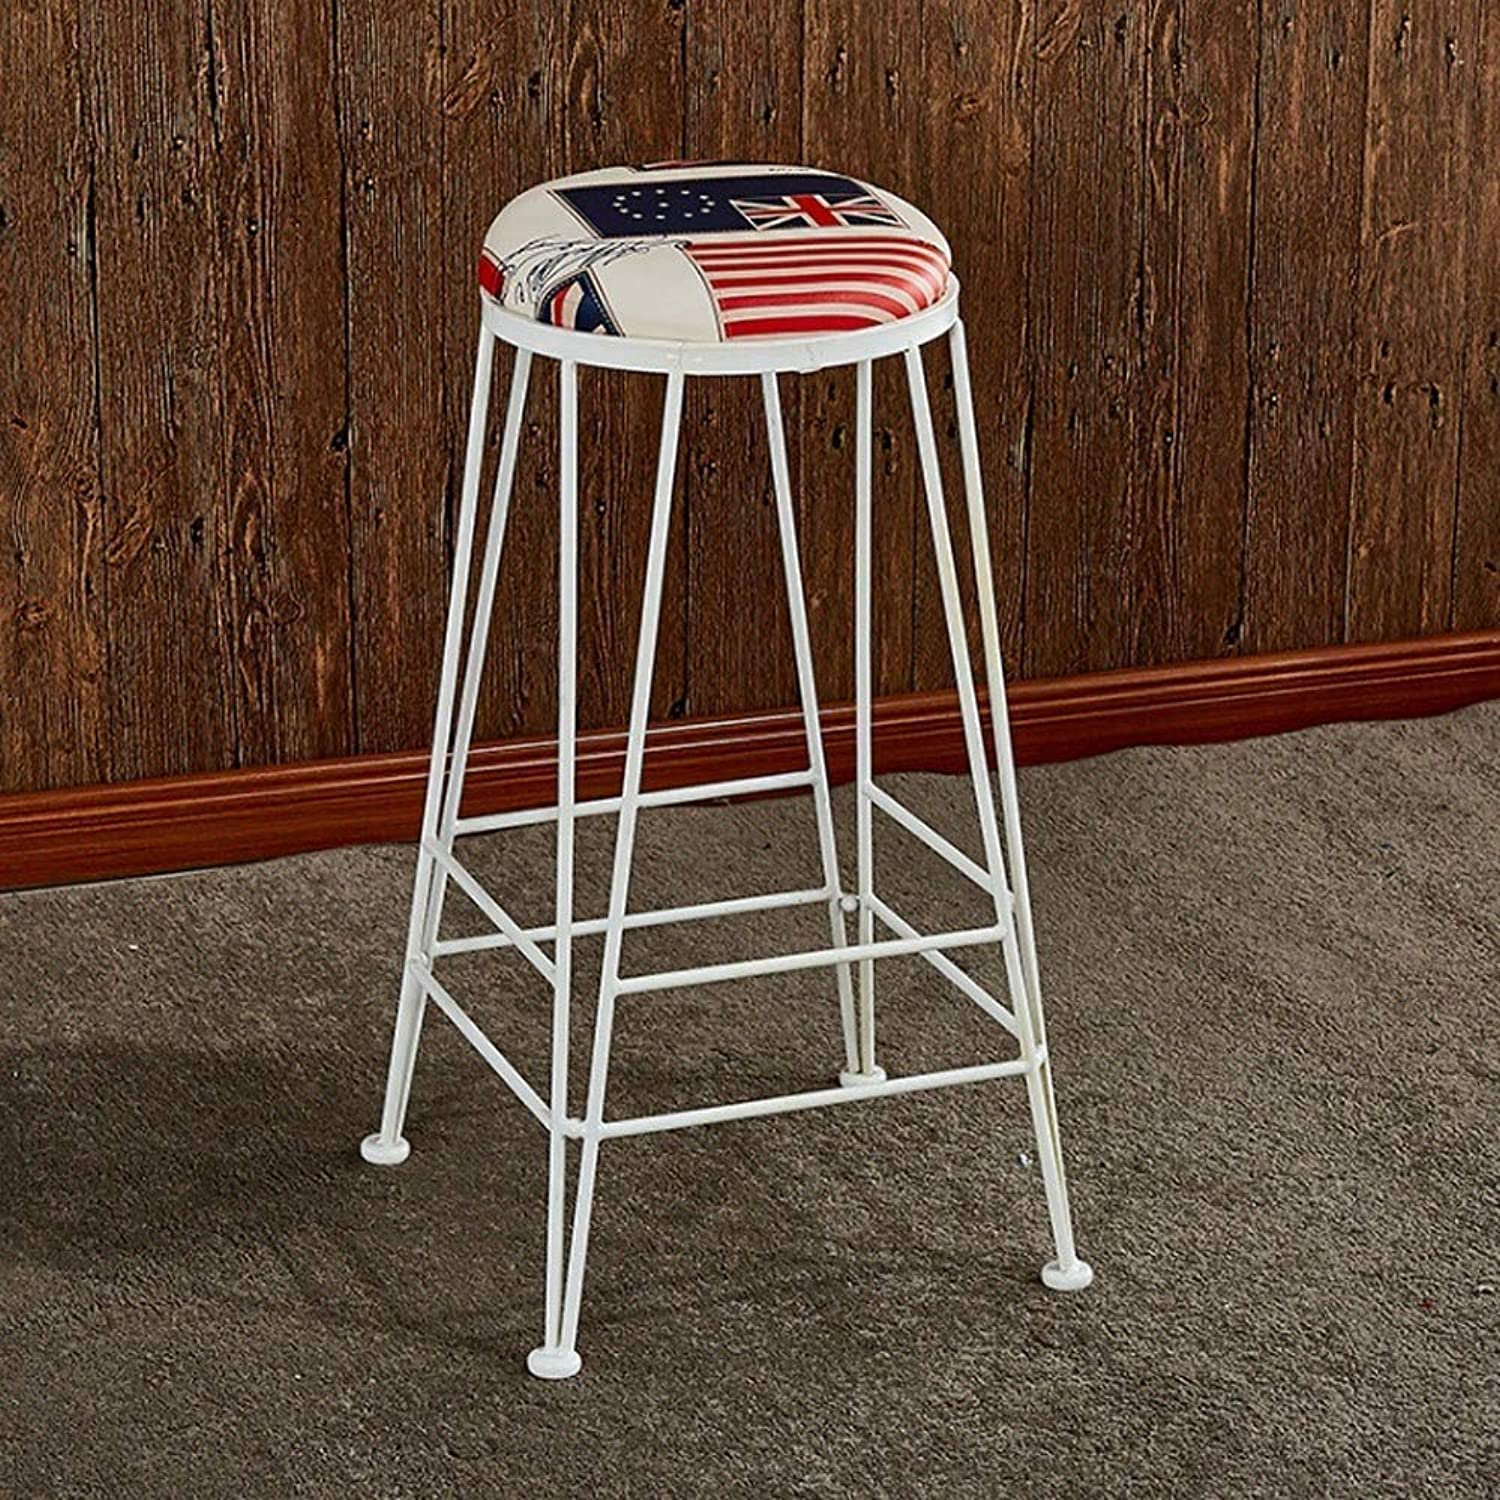 30-inch-Industrial Bar Stool, Restaurant Kitchen Cafe Round High Stool Dining Stool (color   F)